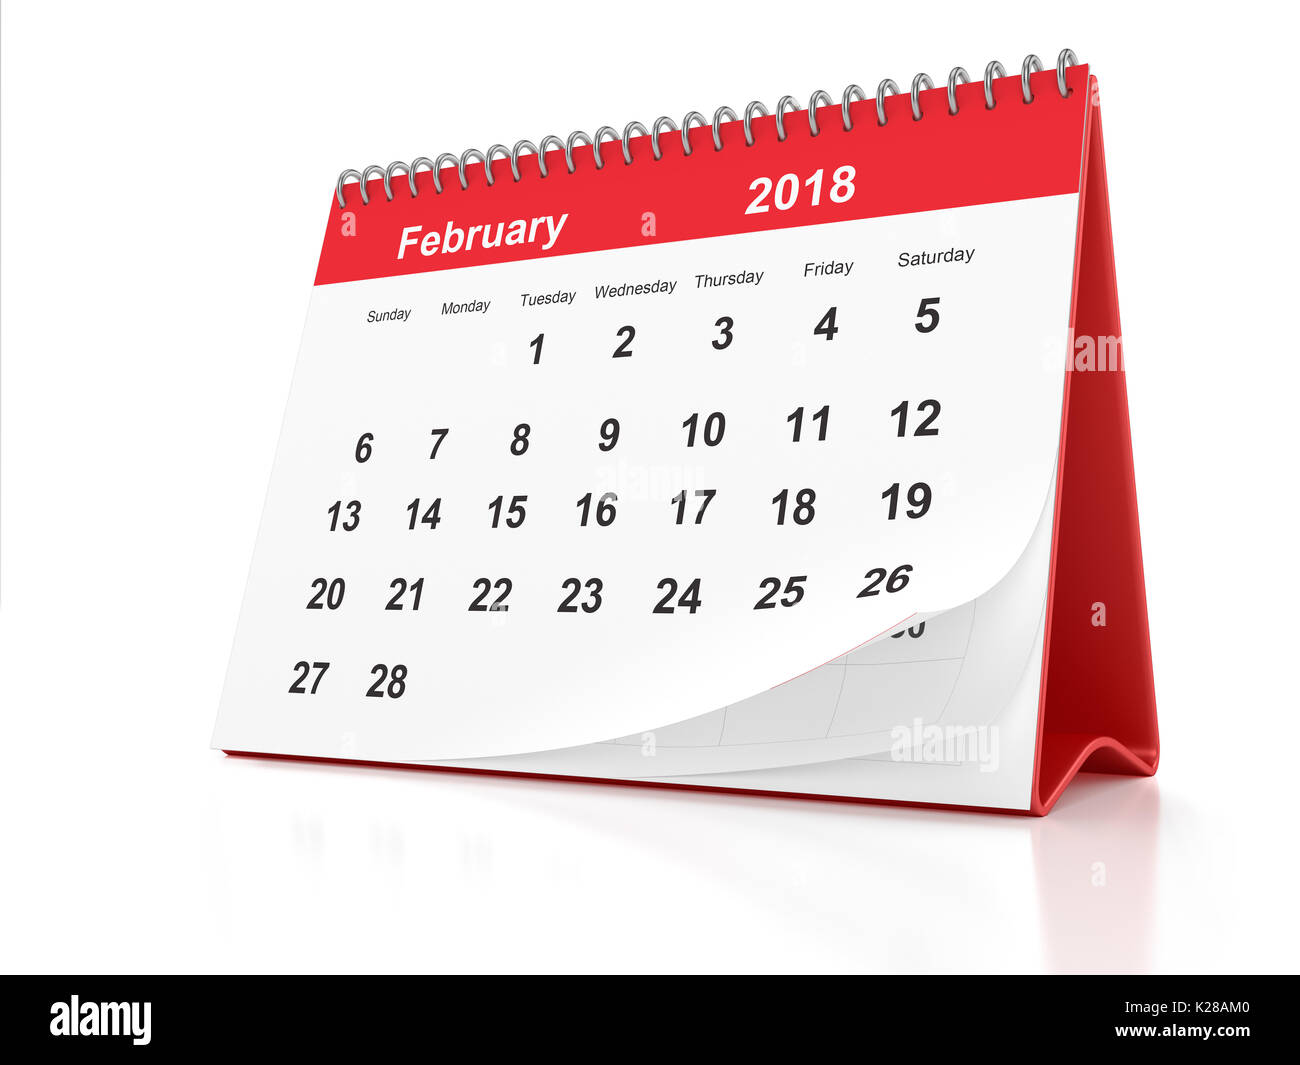 Calendar 2018 Stock Photos Amp Calendar 2018 Stock Images